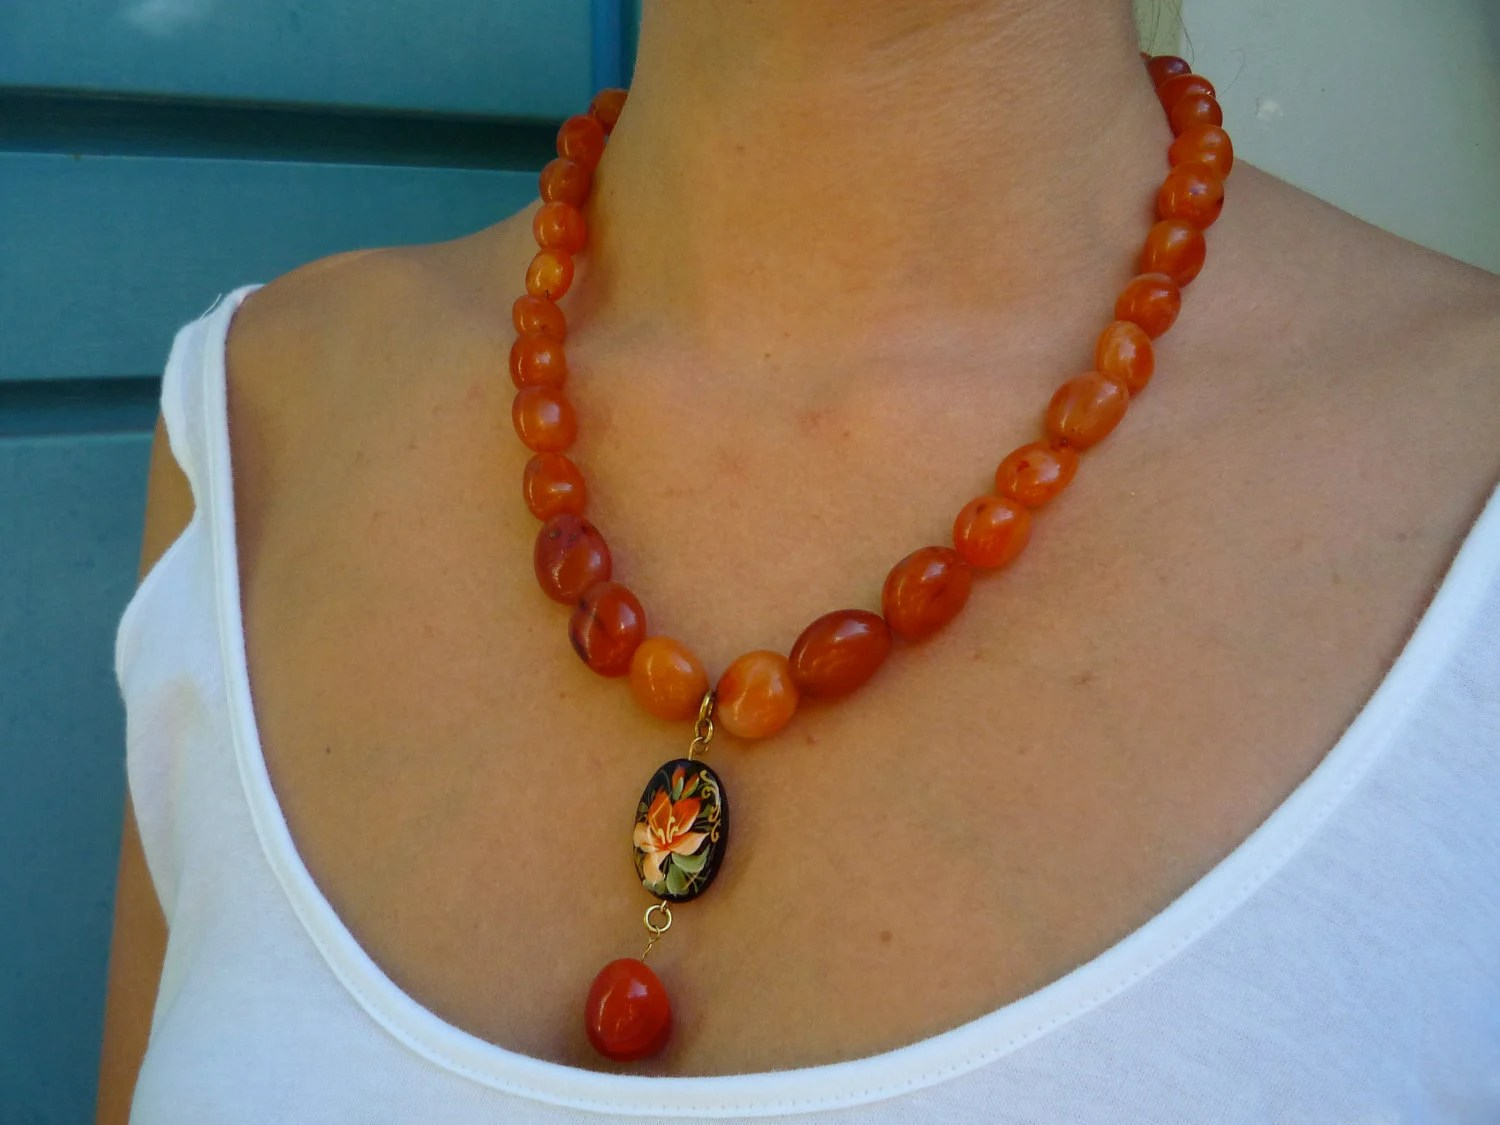 Carnelian semiprecious stones  necklace   with handpainted hibiscus  Agate  pendant .